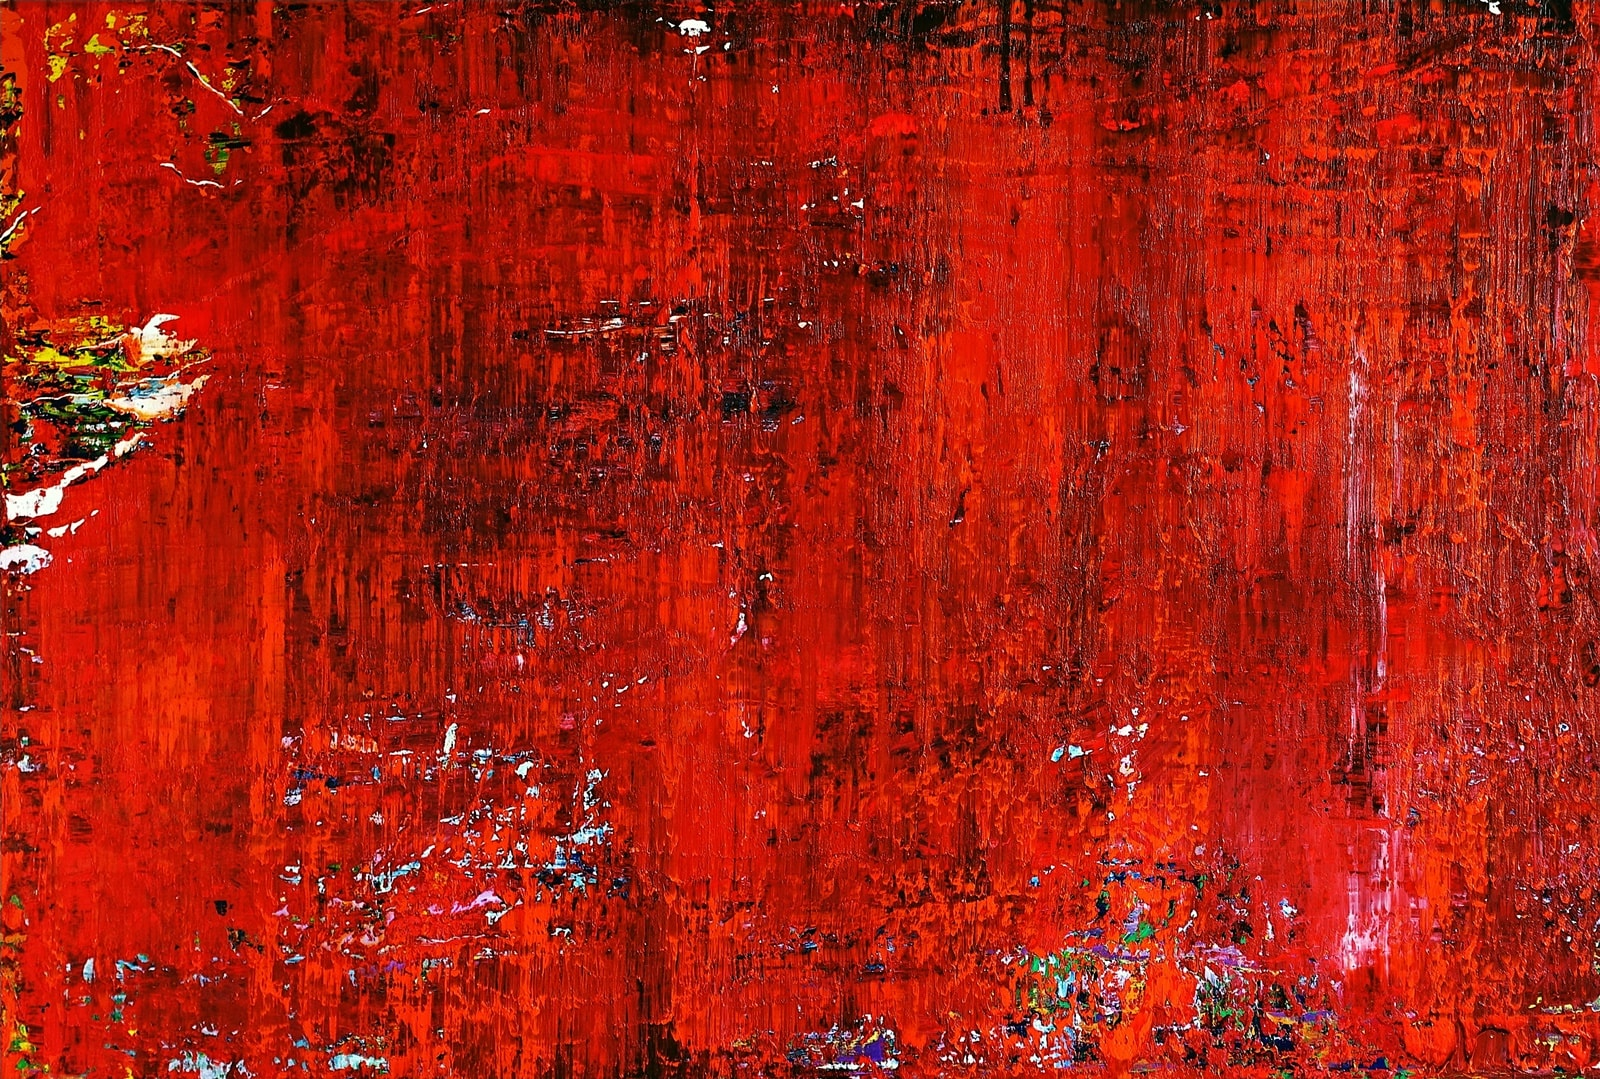 413 - Red Water